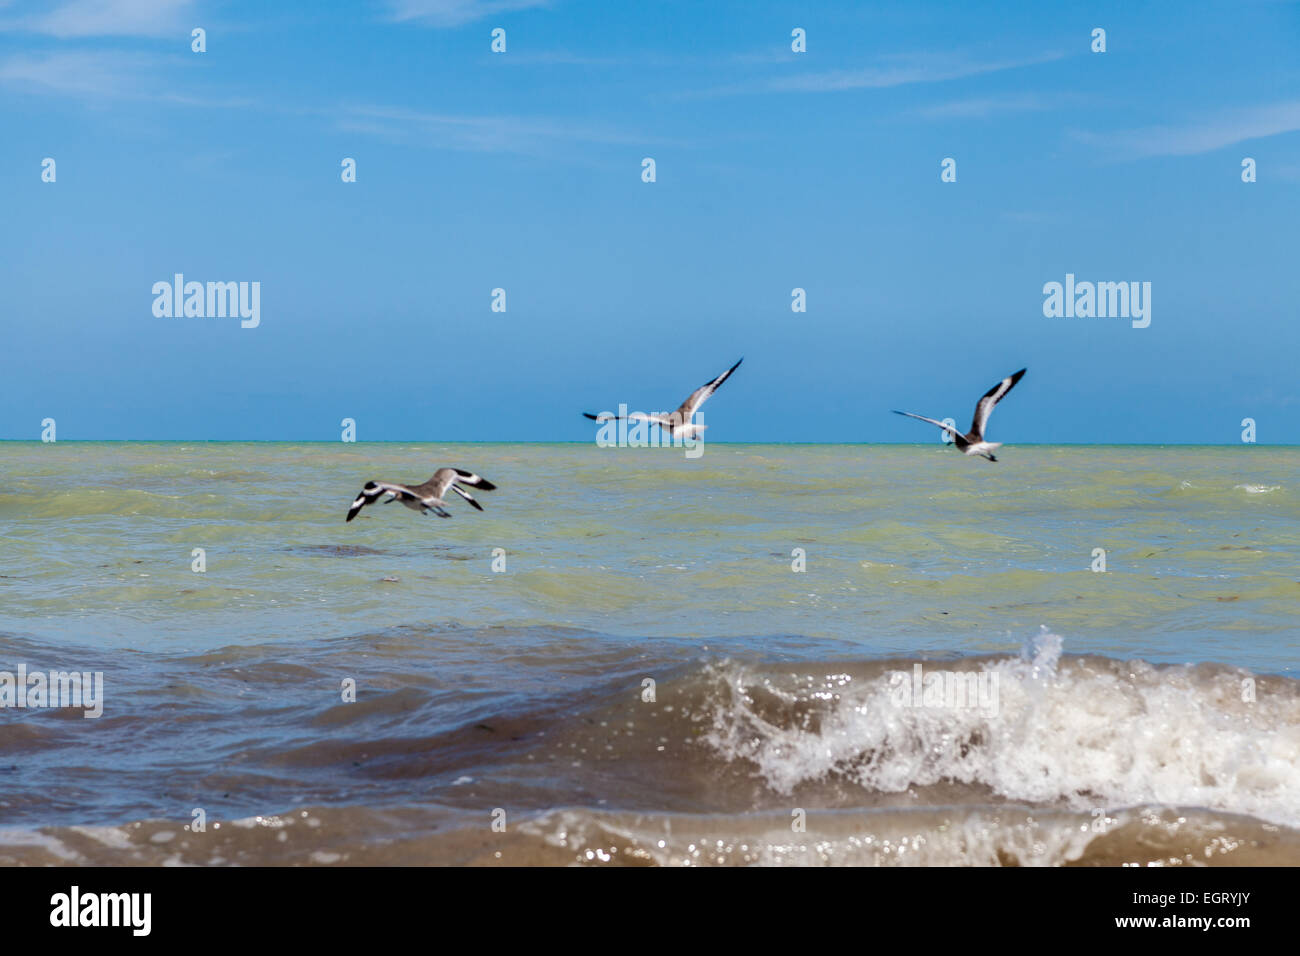 going fishing, birds fishing and playing in the waves of the ocean - Stock Image